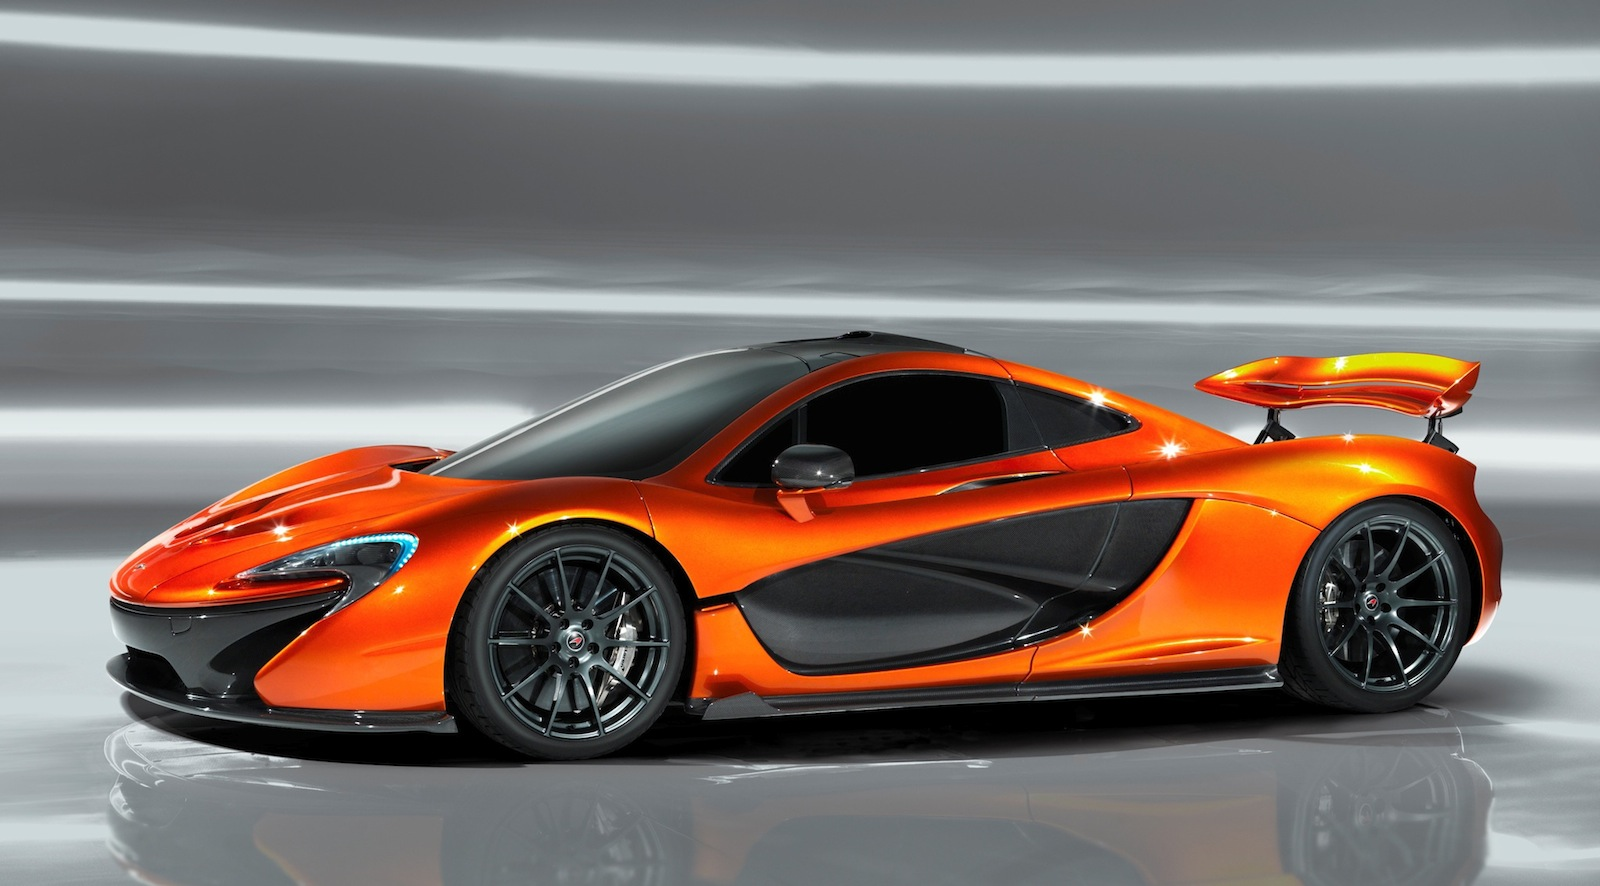 New Official Images McLaren P1 Design Study